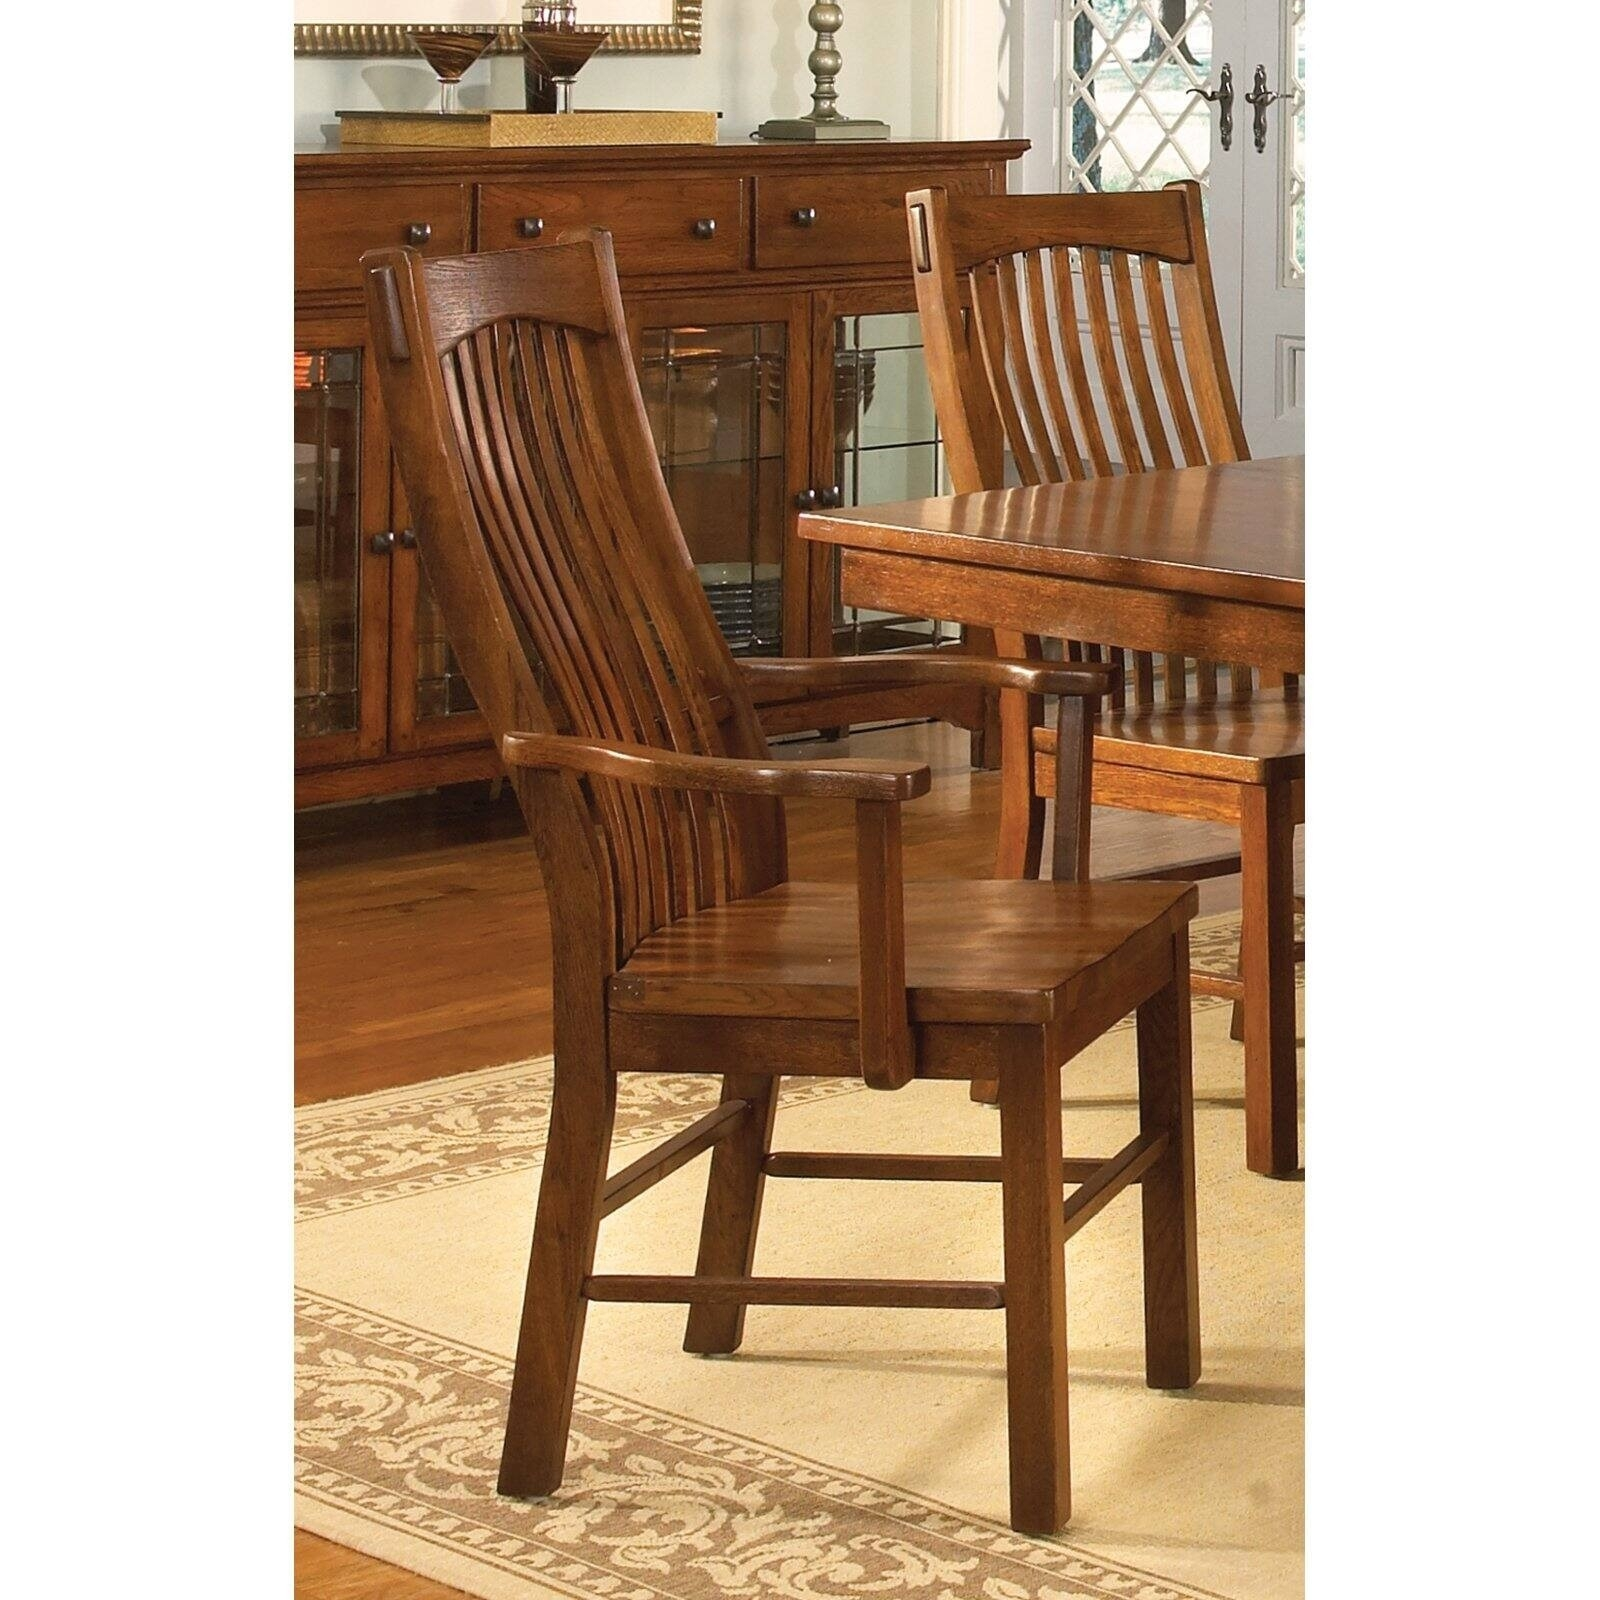 Wooden Kitchen Chairs With Arms Ideas On Foter